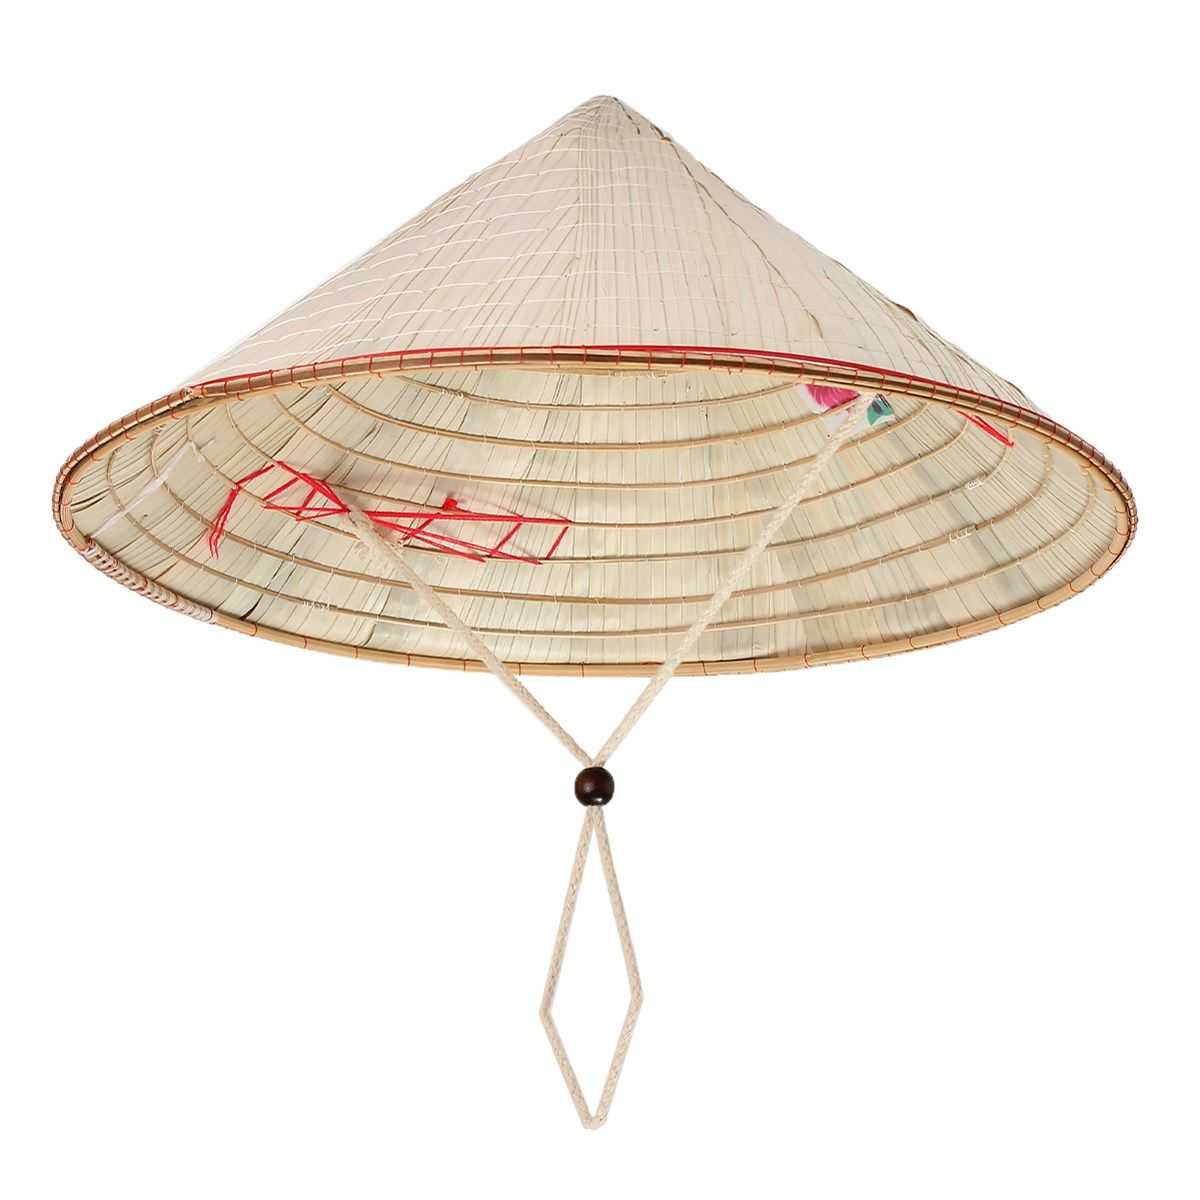 e292fcb04ab Chinese Oriental Asian Farmer Straw Bamboo Hat Leaf Vietnamese Vietnam Rice  Hats Cone Garden Fishing Sun Cap Traditional Dance